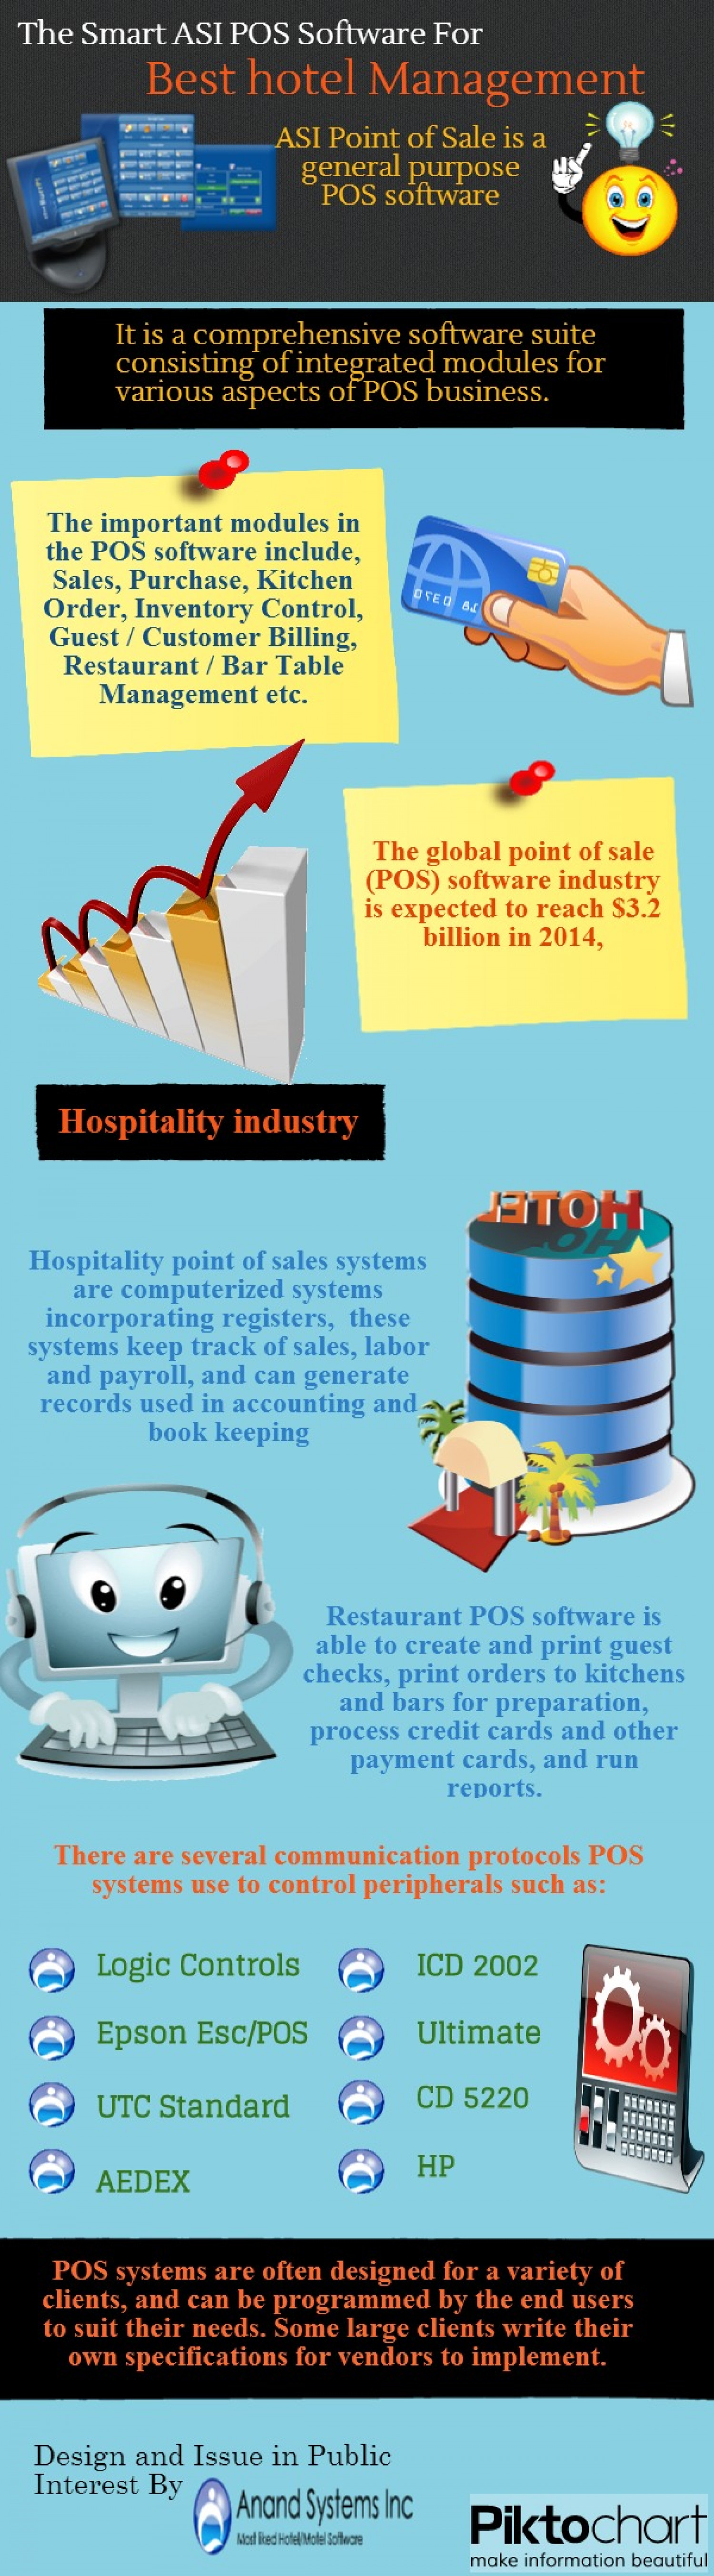 The Smart ASI POS Software For Best hotel Management Infographic